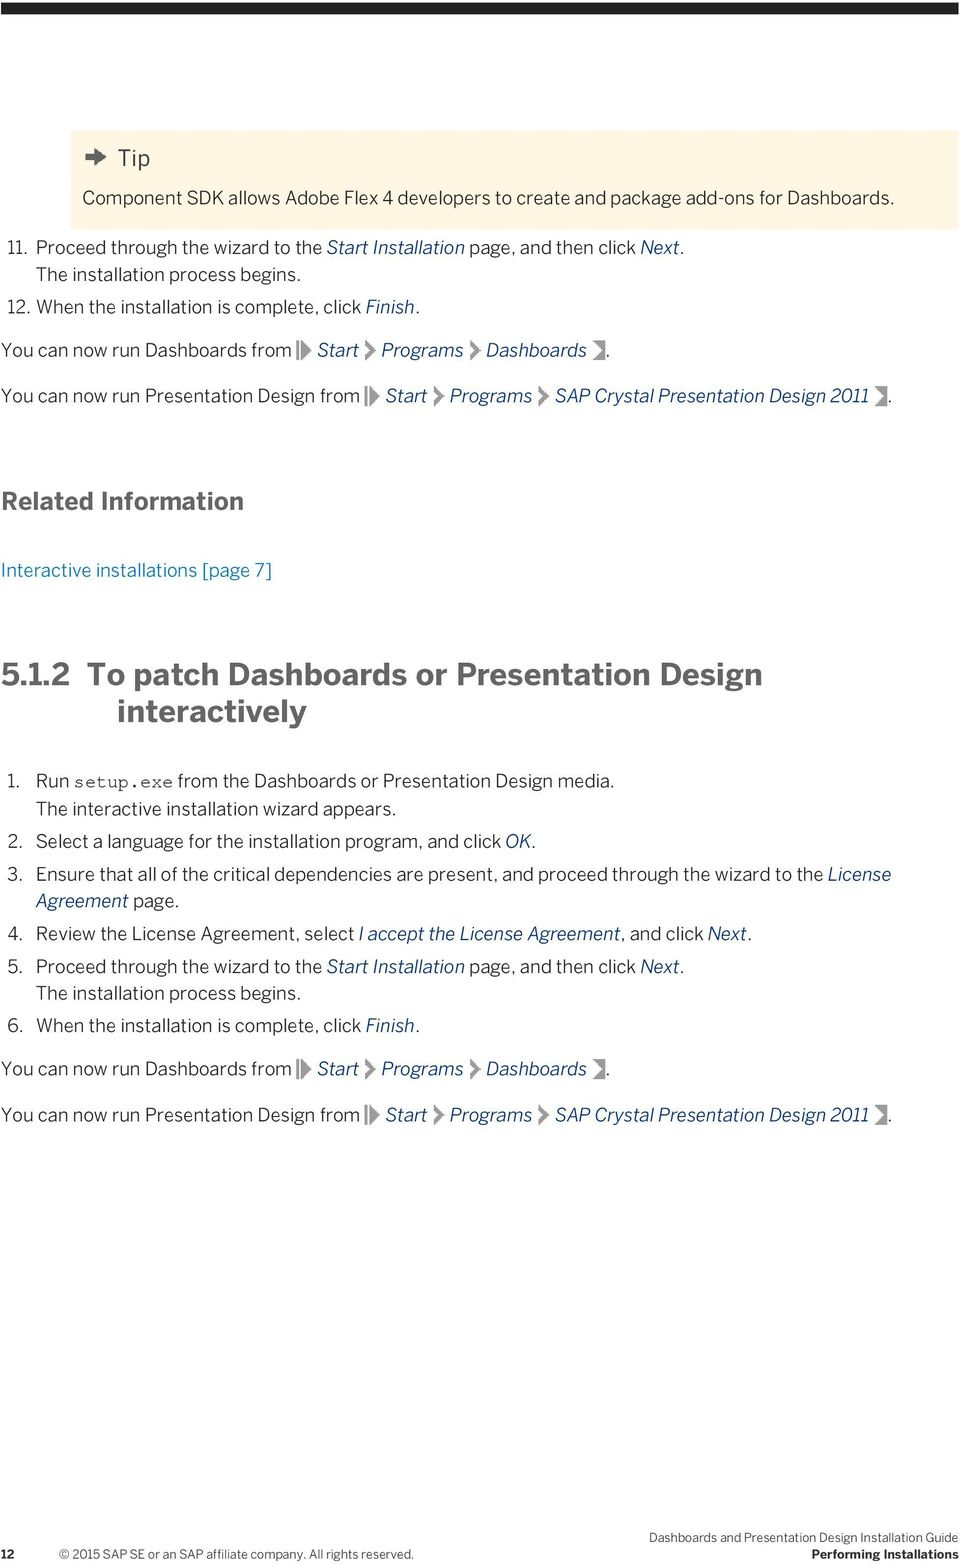 You can now run Presentation Design from Start Programs SAP Crystal Presentation  Design 2011. Related